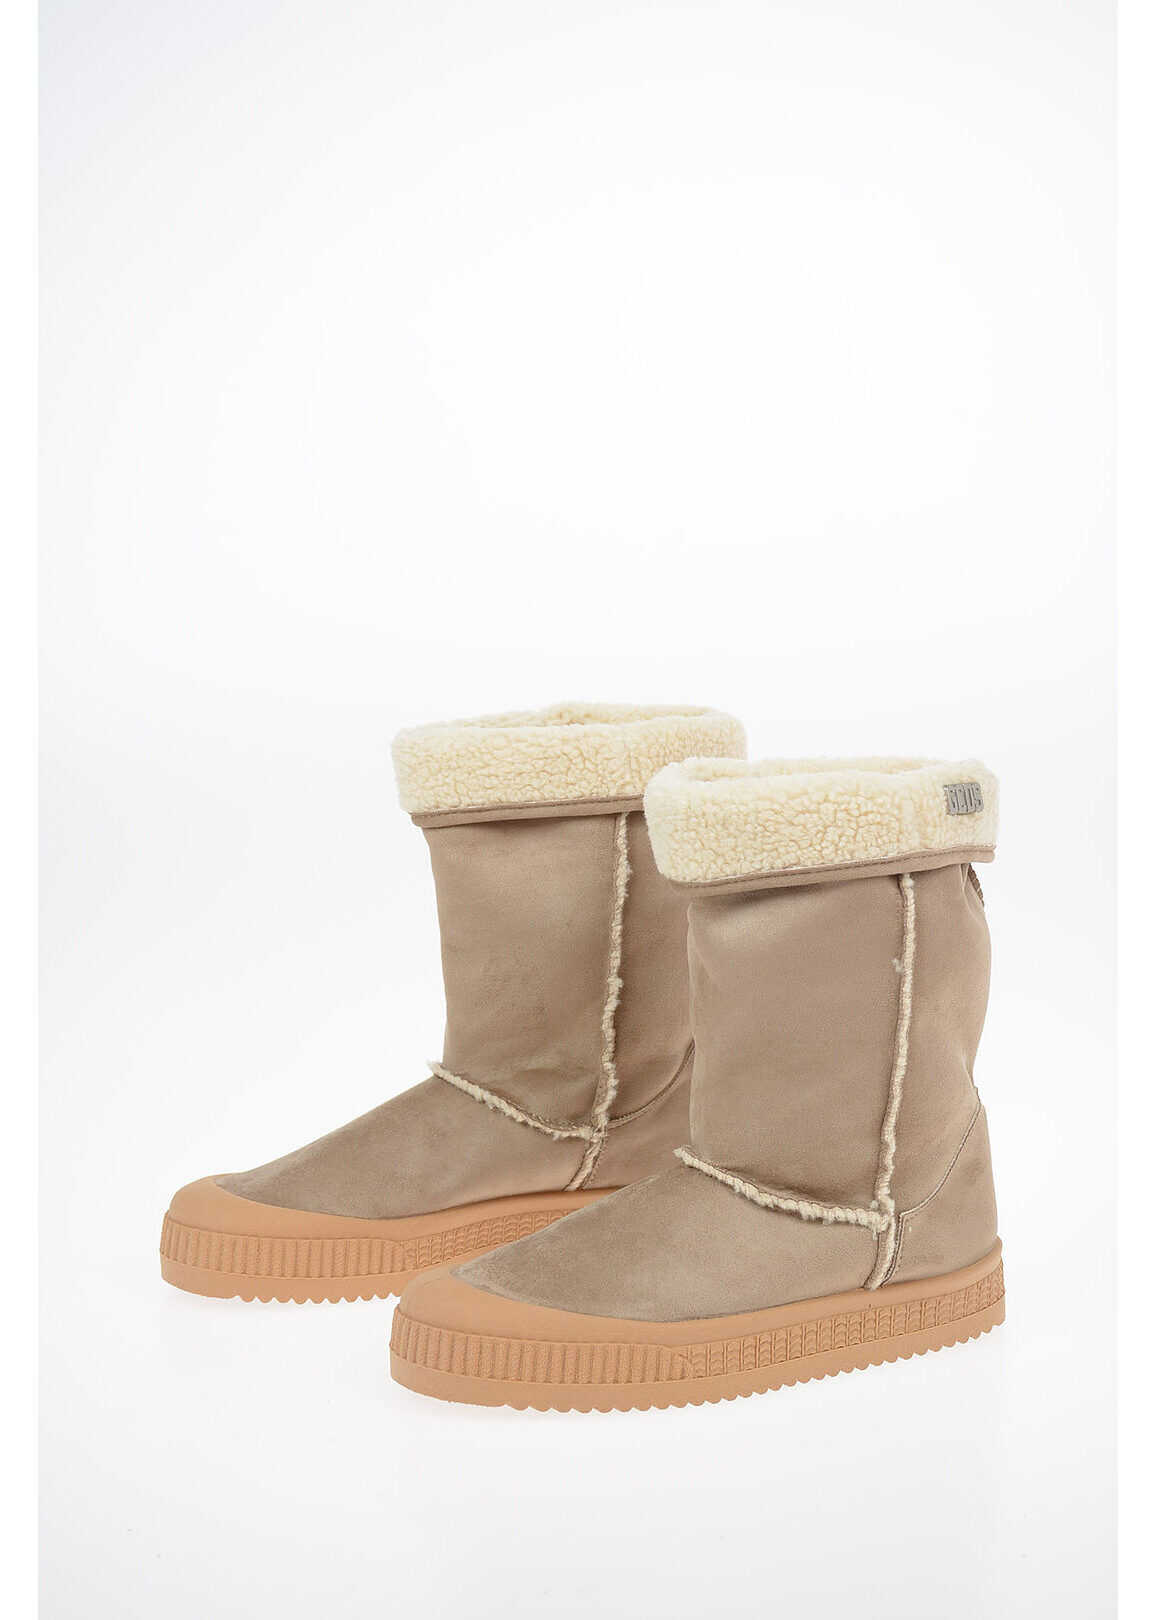 GCDS Suede Leather Ankle Boots BEIGE imagine b-mall.ro